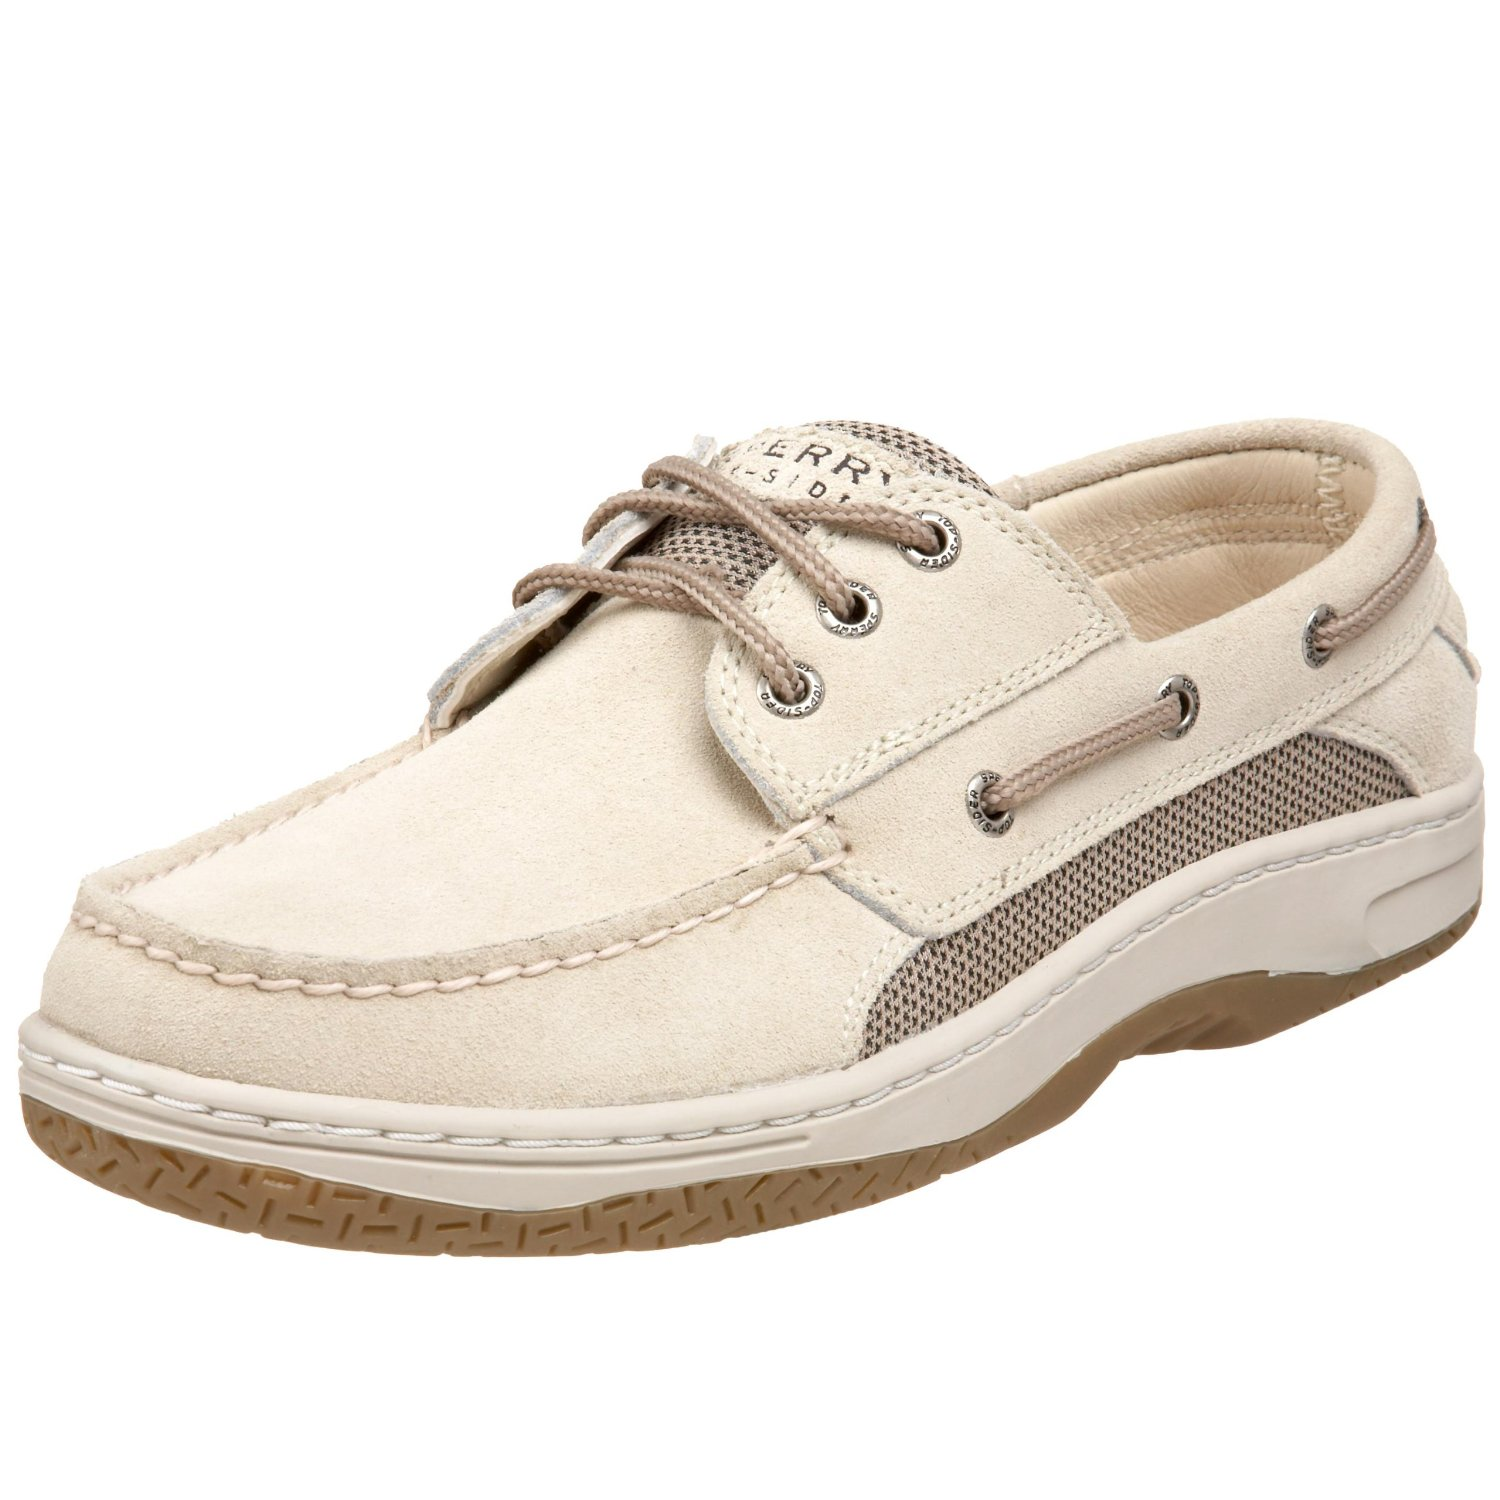 Cheap Sperry Boat Shoes